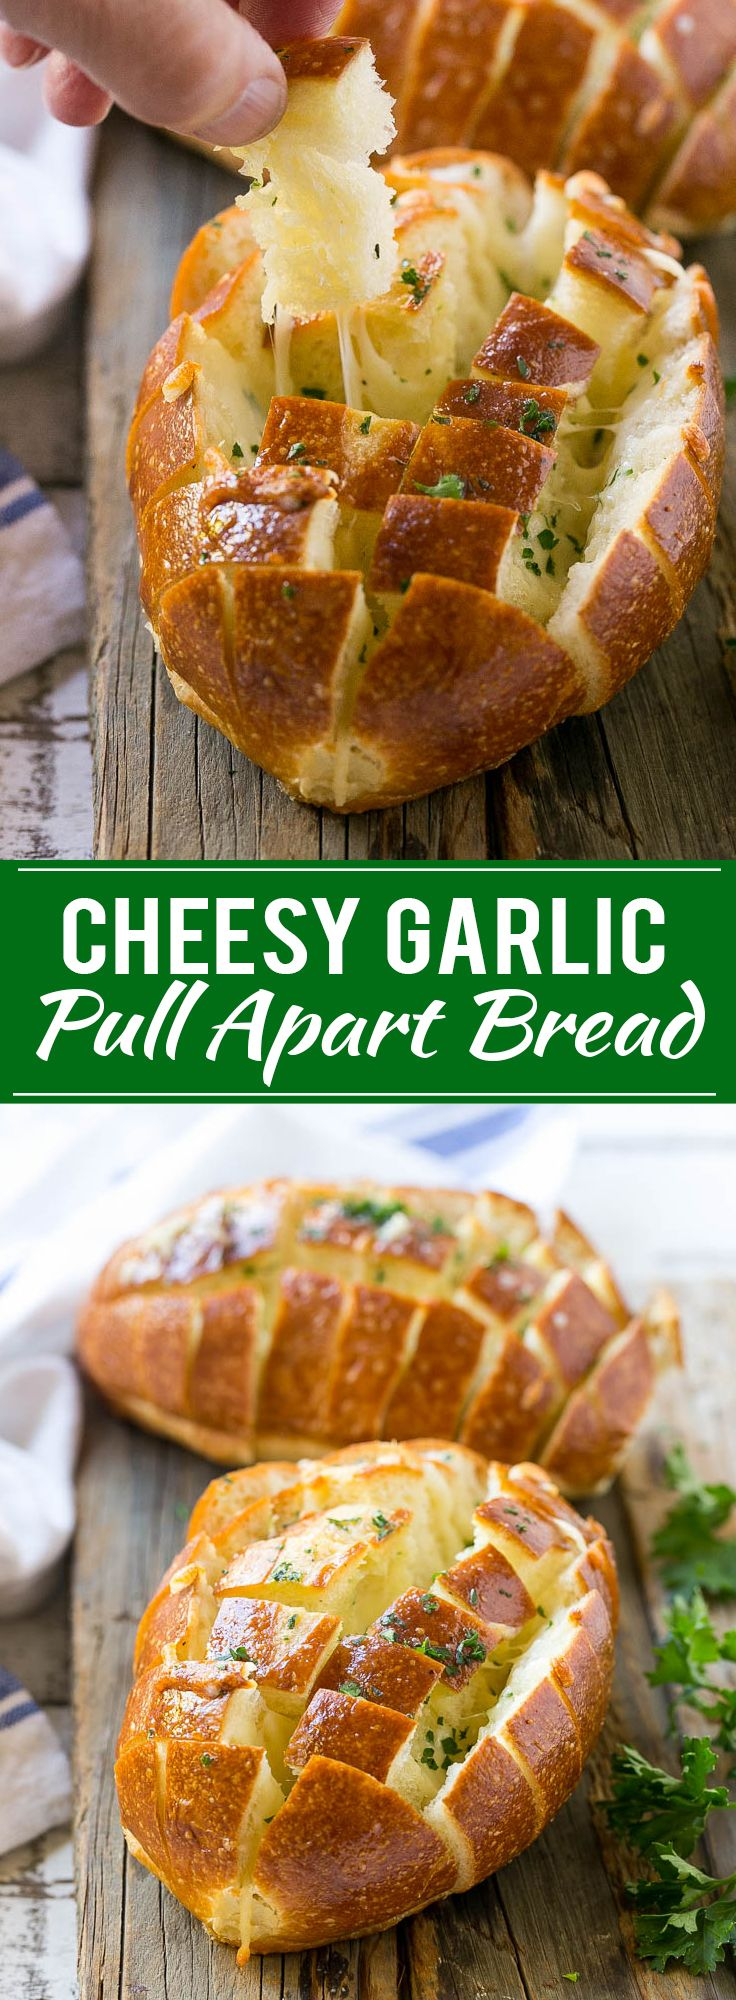 This recipe for cheesy garlic pull apart bread is crusty rolls stuffed with garlic butter and plenty of cheese, then baked to perfection. The perfect accompaniment to a hot bowl of soup!